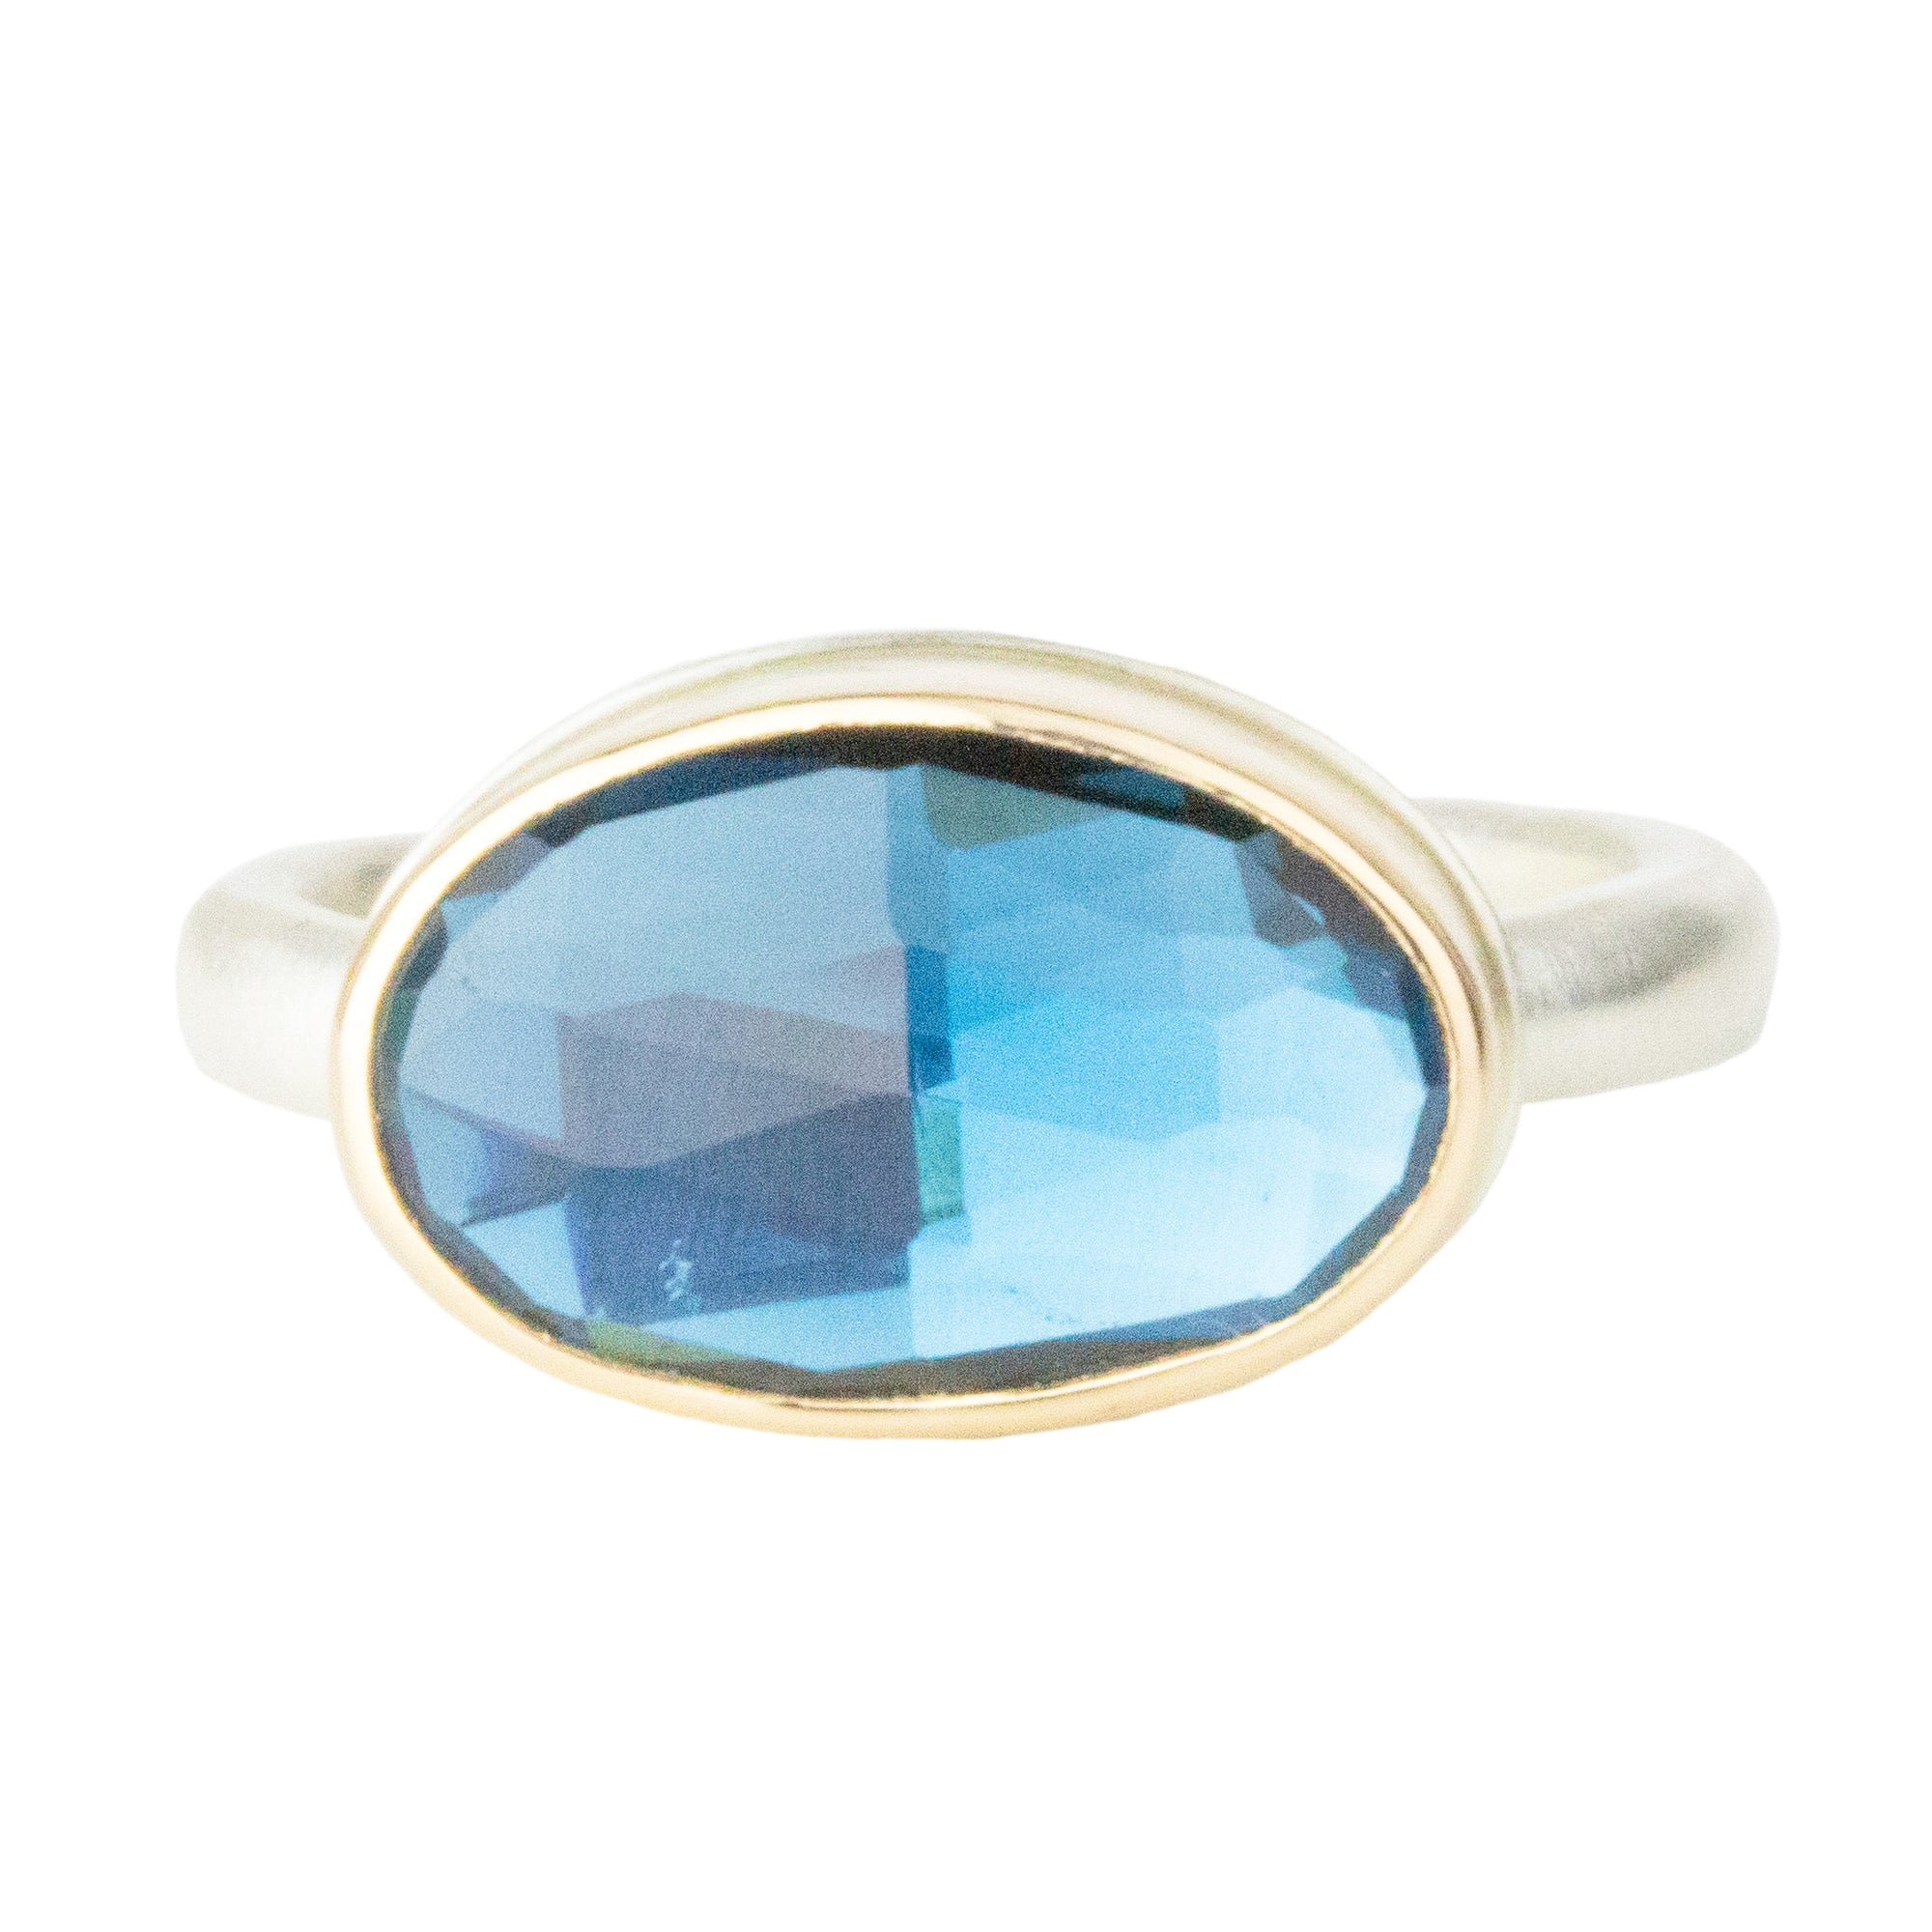 Small London Blue Topaz Ring